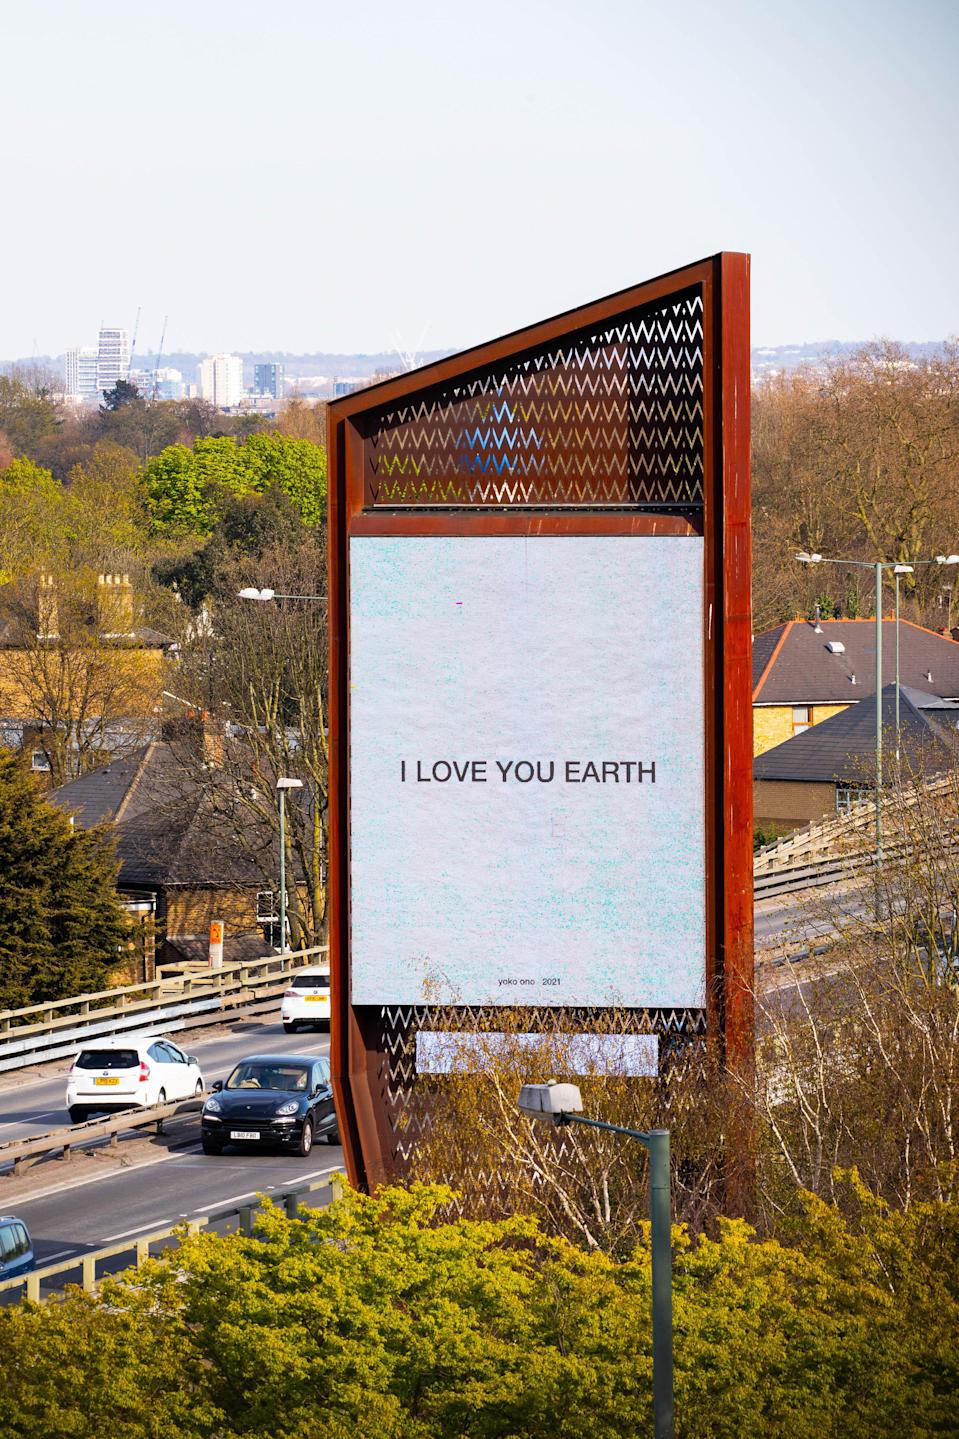 Yoko Ono's artwork I Love You Earth on the Chiswick Towers' digital billboards in West London by Serpentine, with ClearChannel (David Parry/PA)